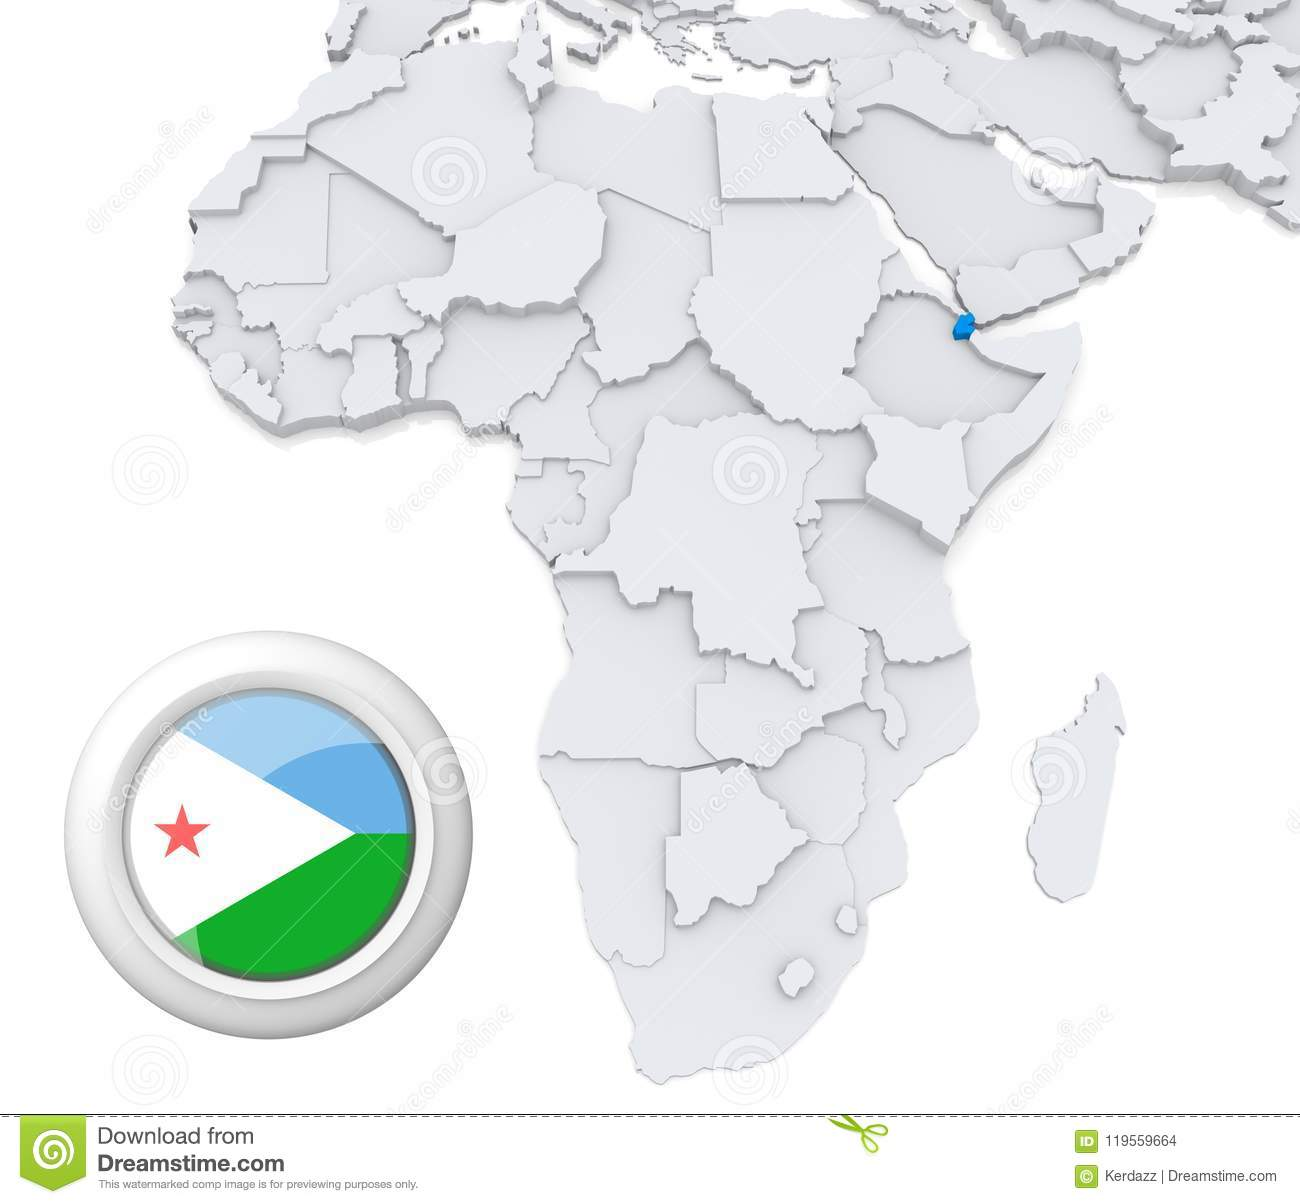 Djibouti On Africa Map.Djibouti On Africa Map Stock Illustration Illustration Of Business